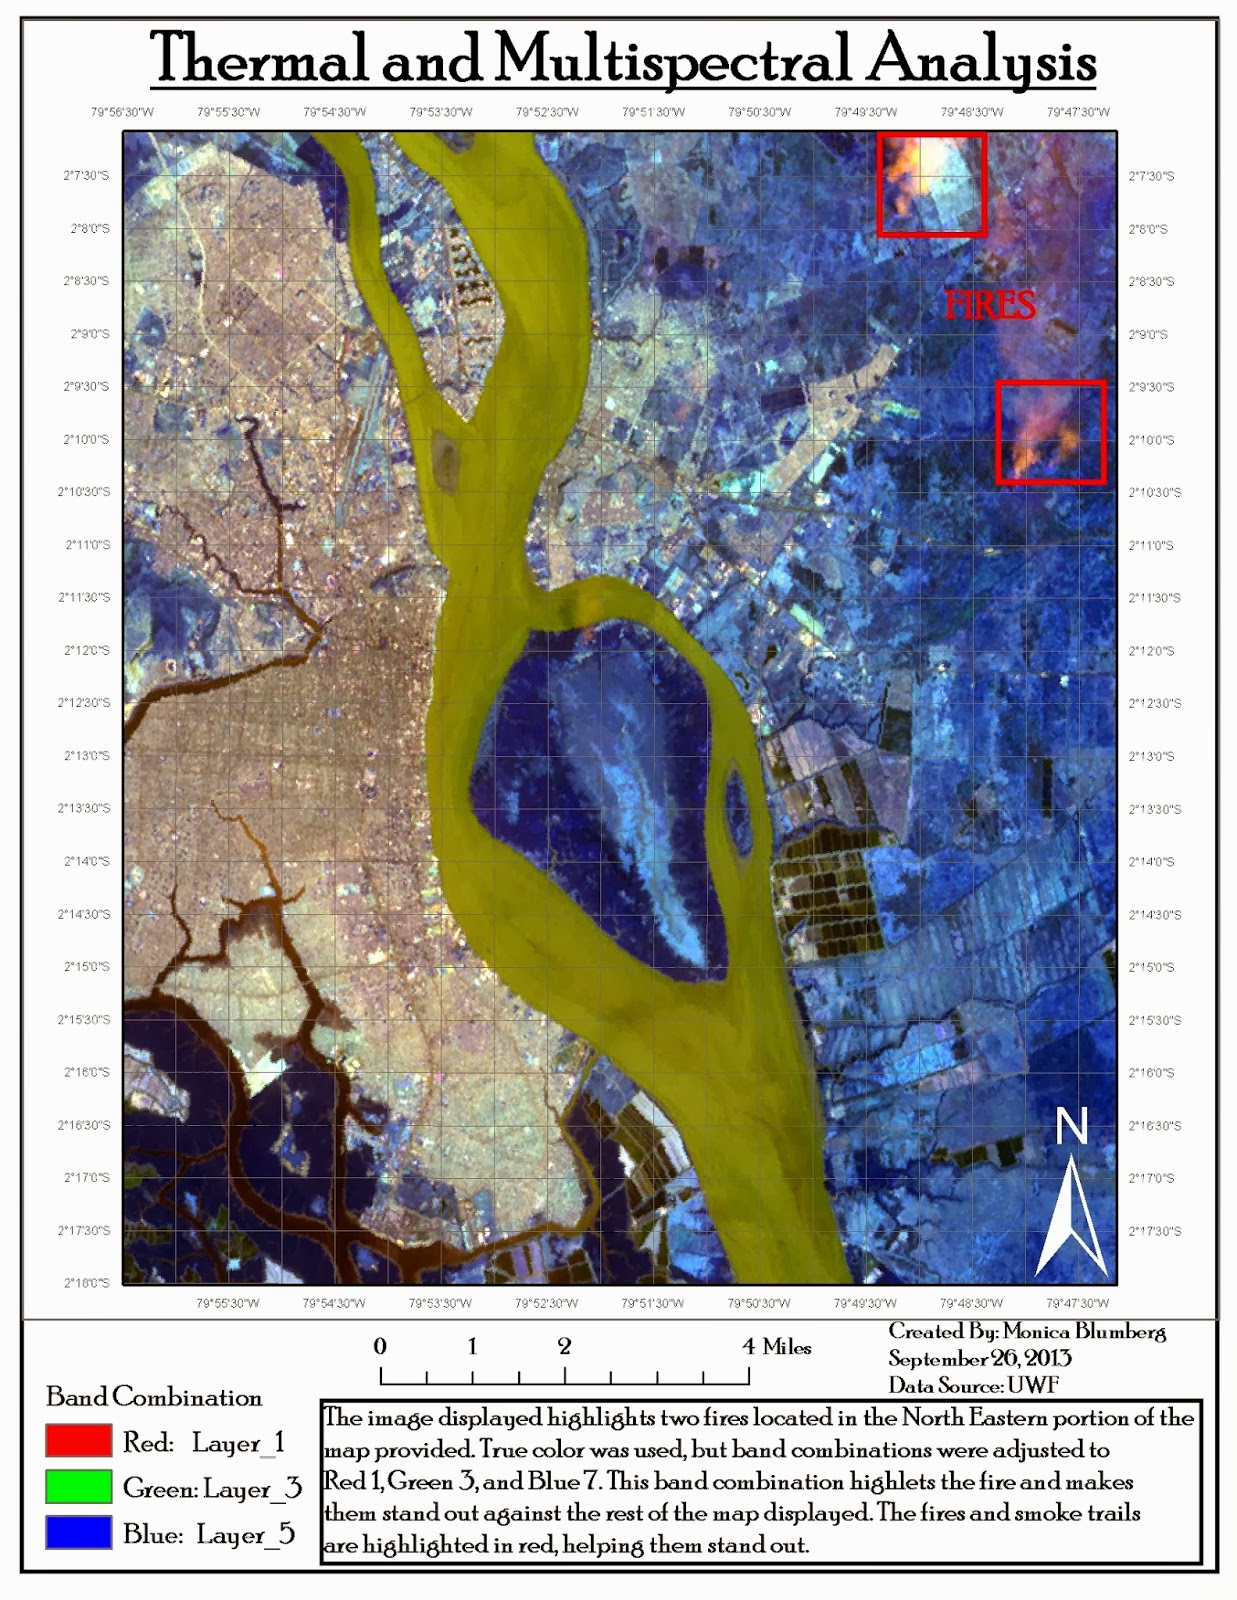 Multispectral Analysis Images Multispectral Image Where